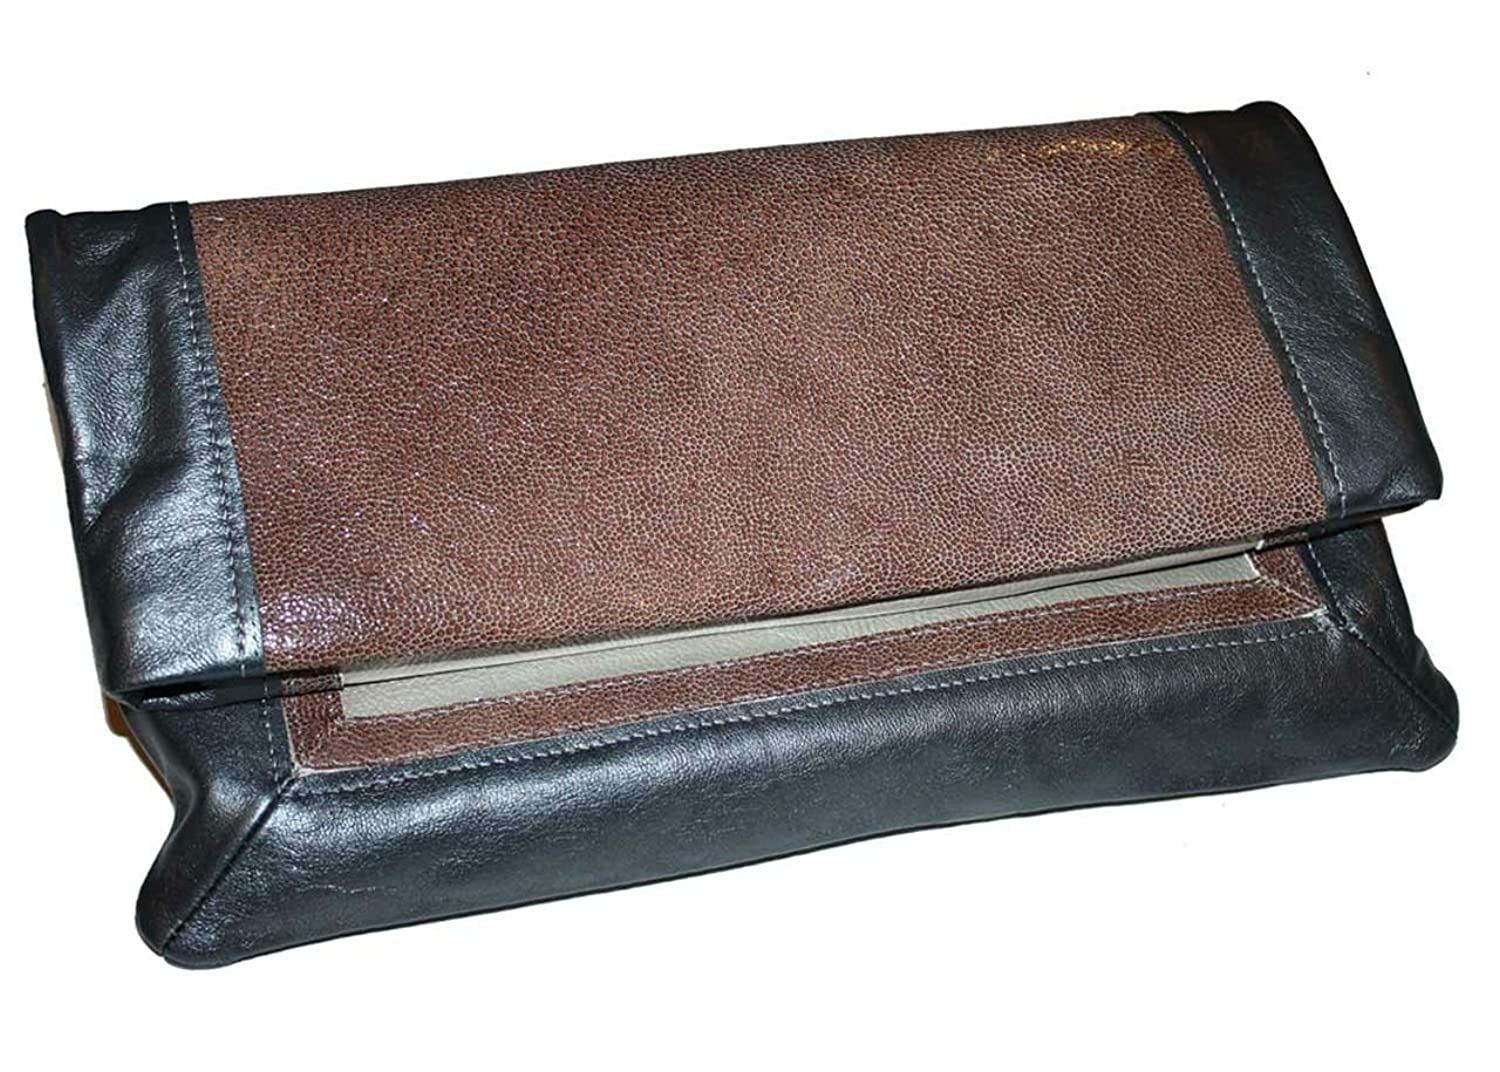 Chic Convertible Fold-Over Clutch Bag - 100% Genuine Leather - Made in USA